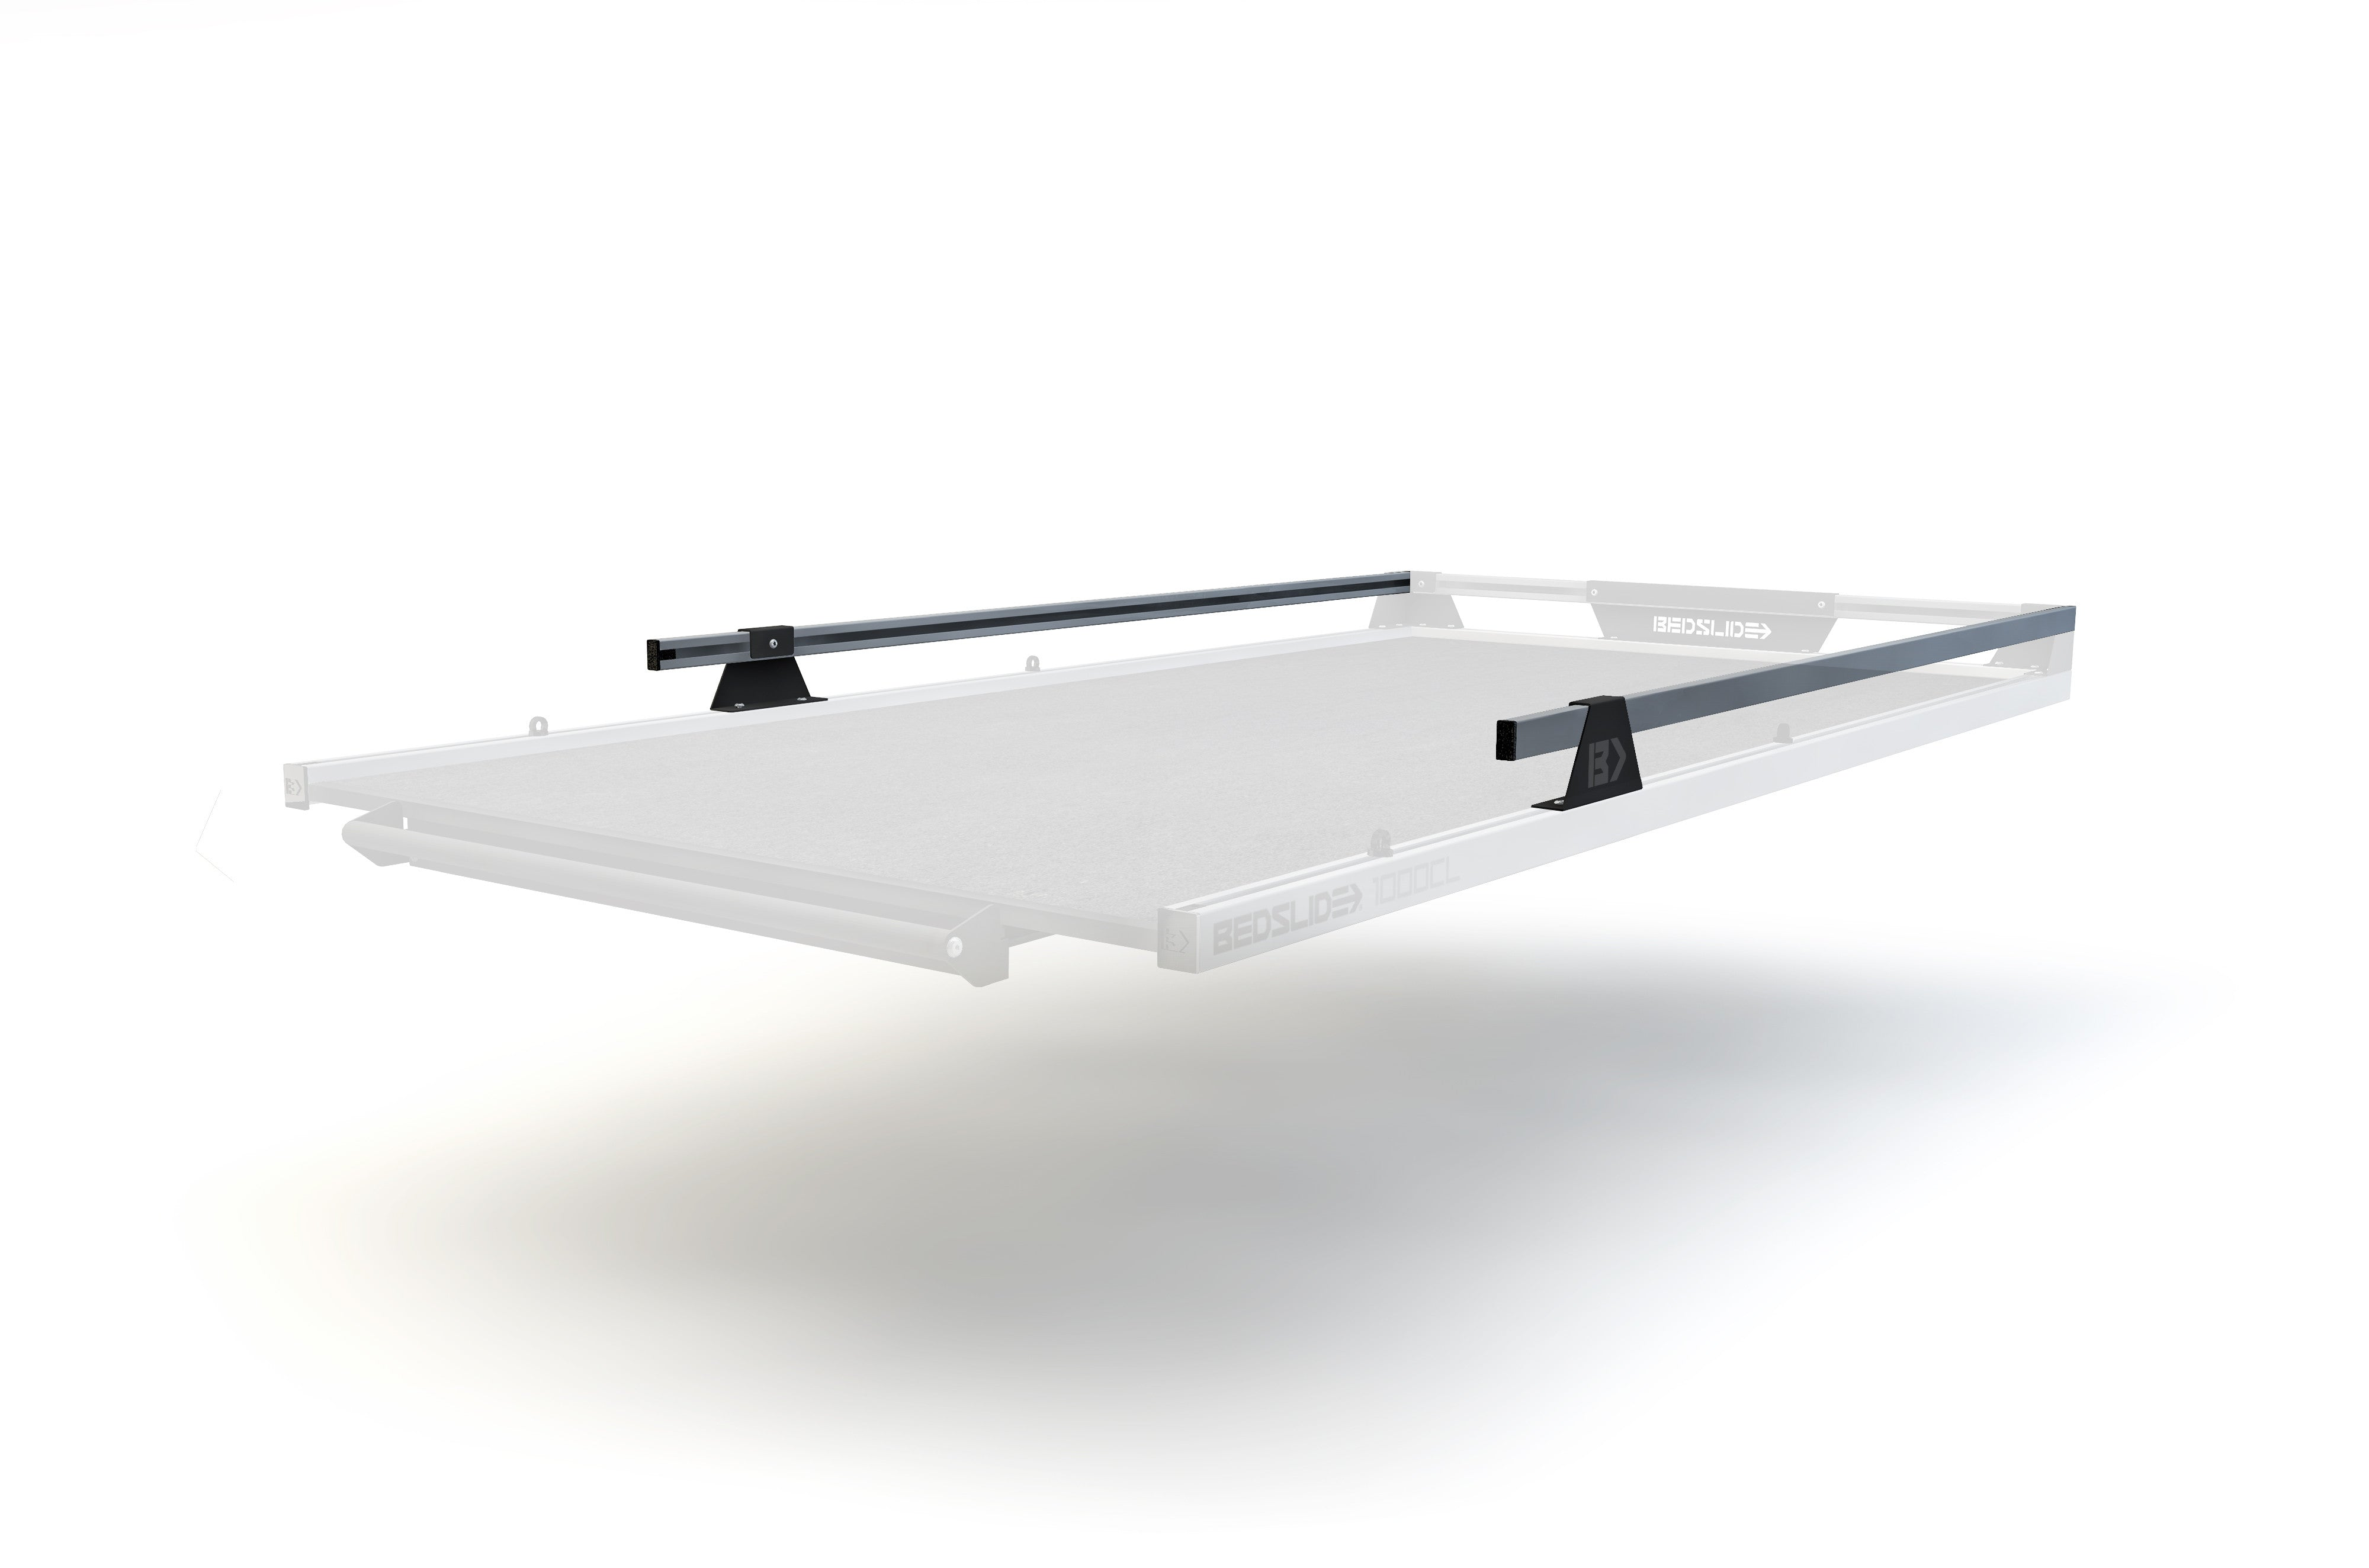 RAILS: GUARDRAIL kit for BEDSLIDE CLASSIC